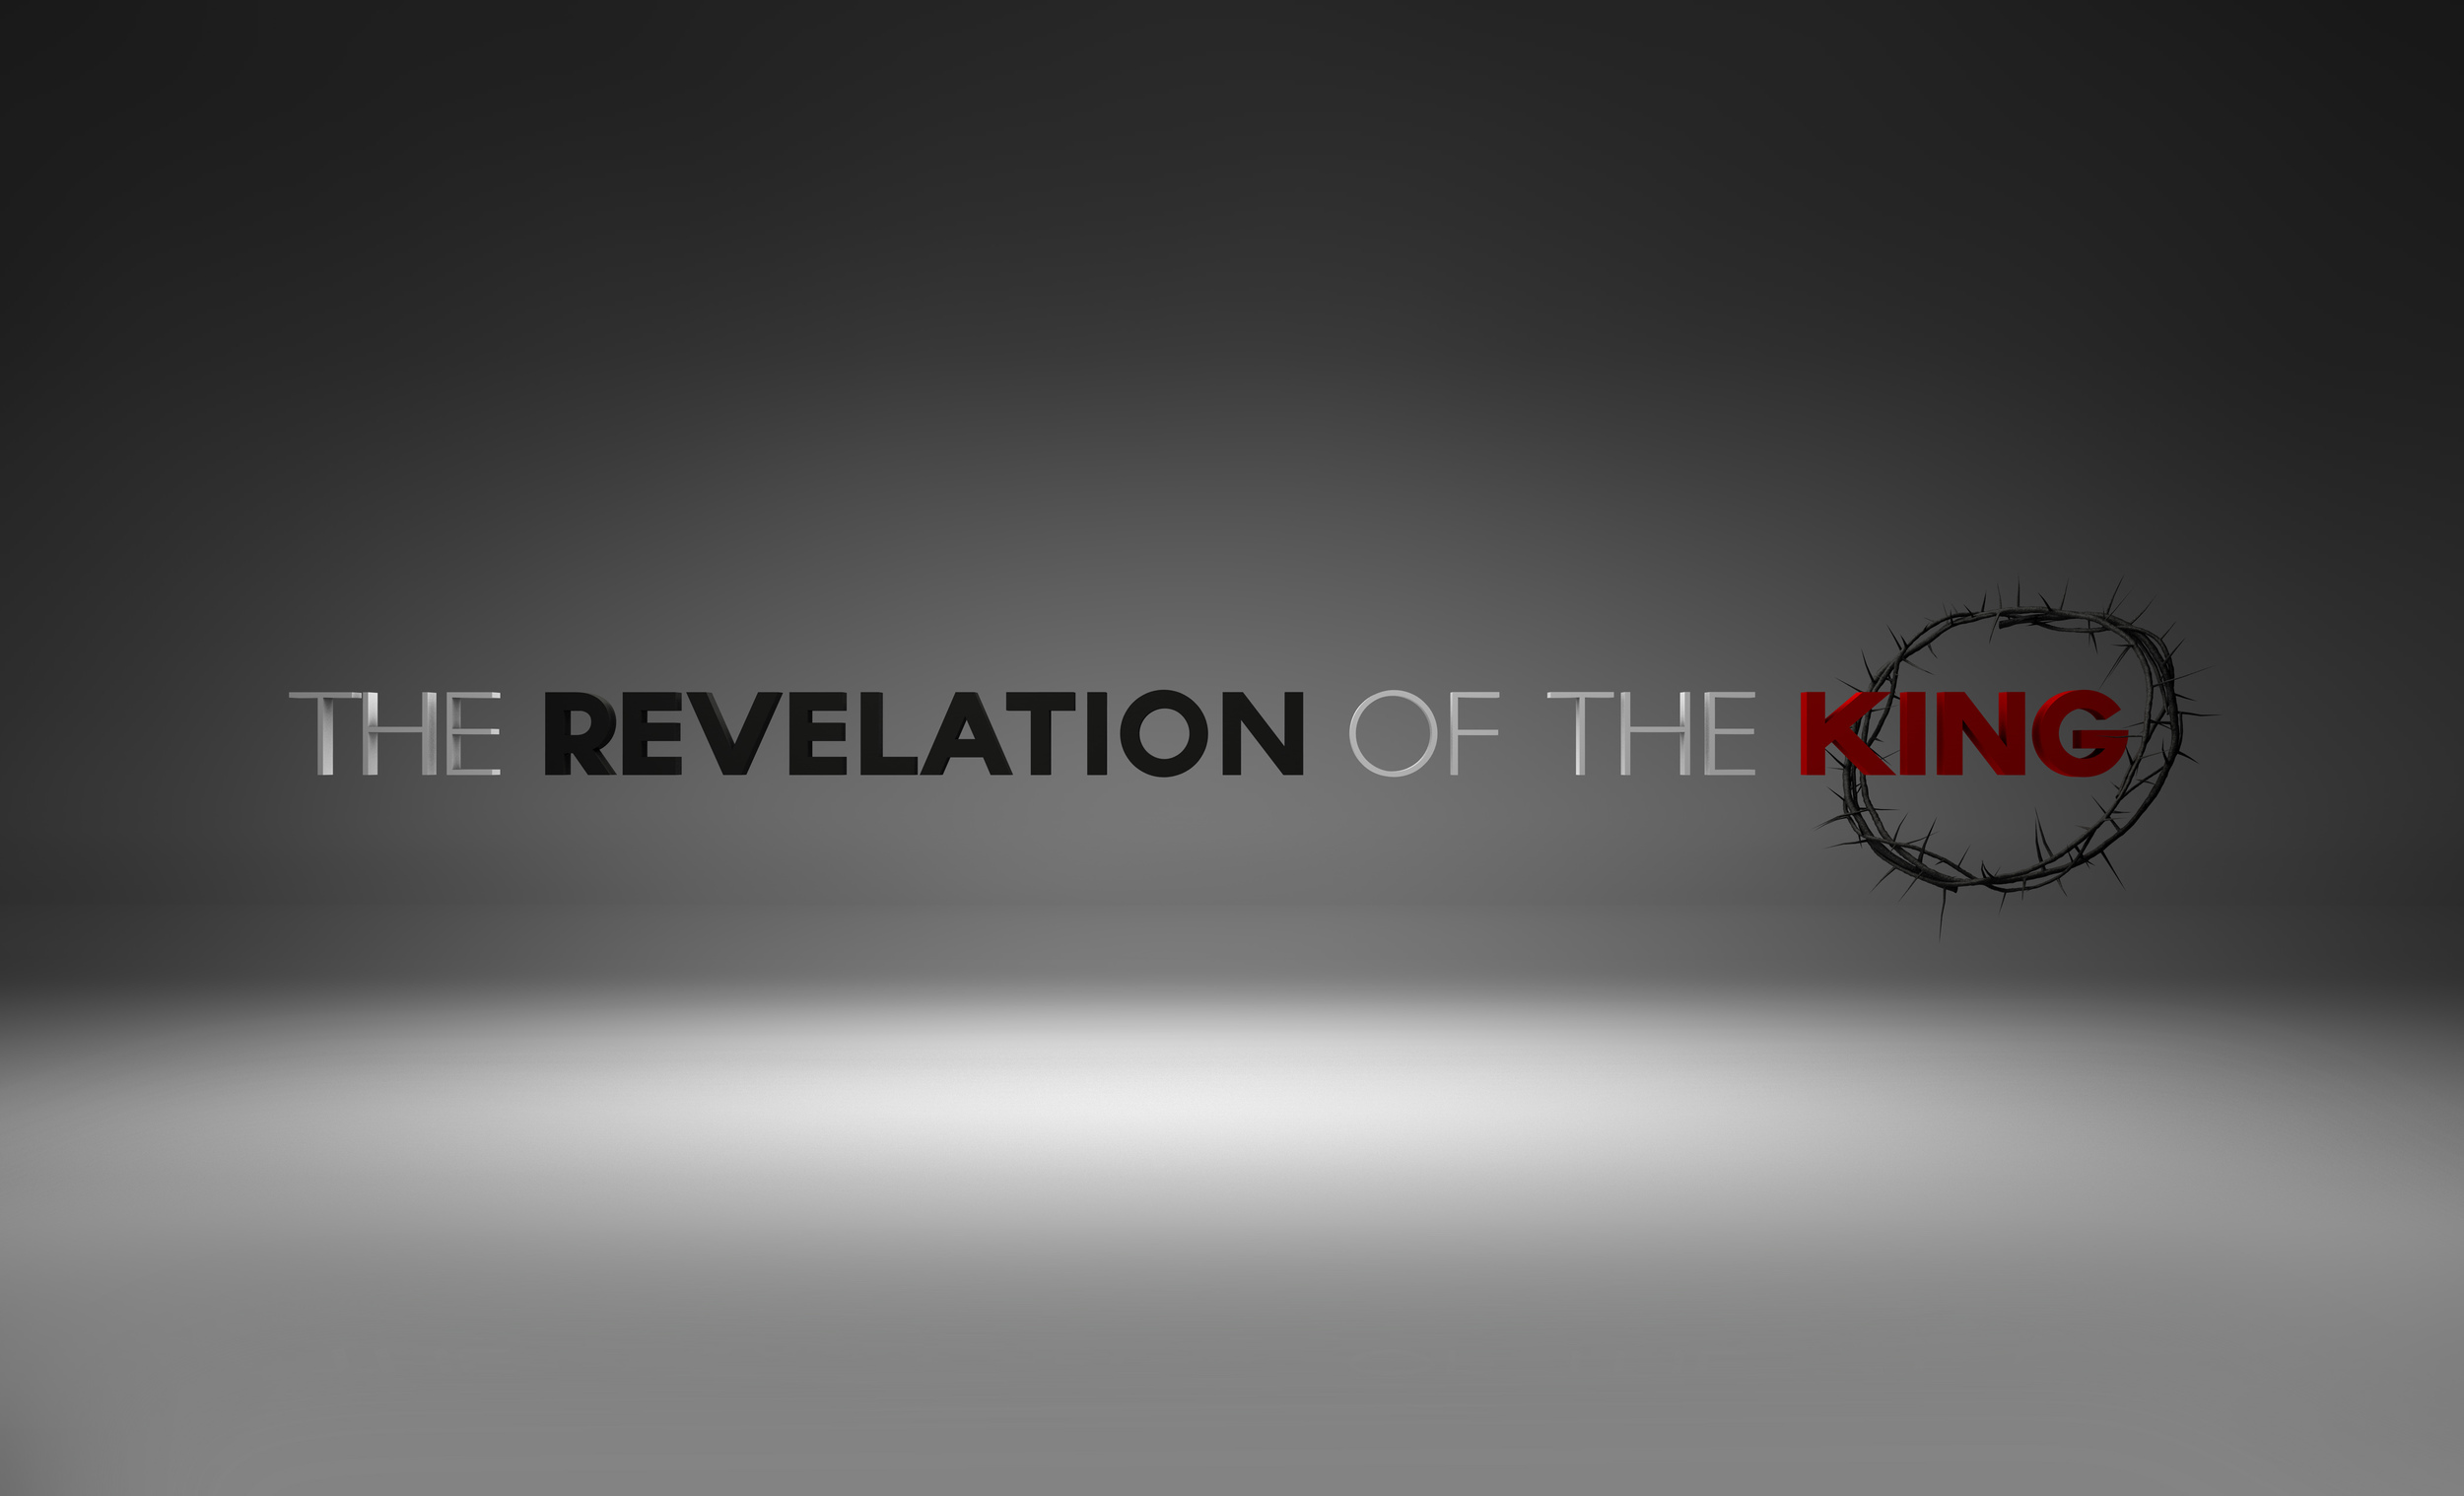 Revelation of the king print